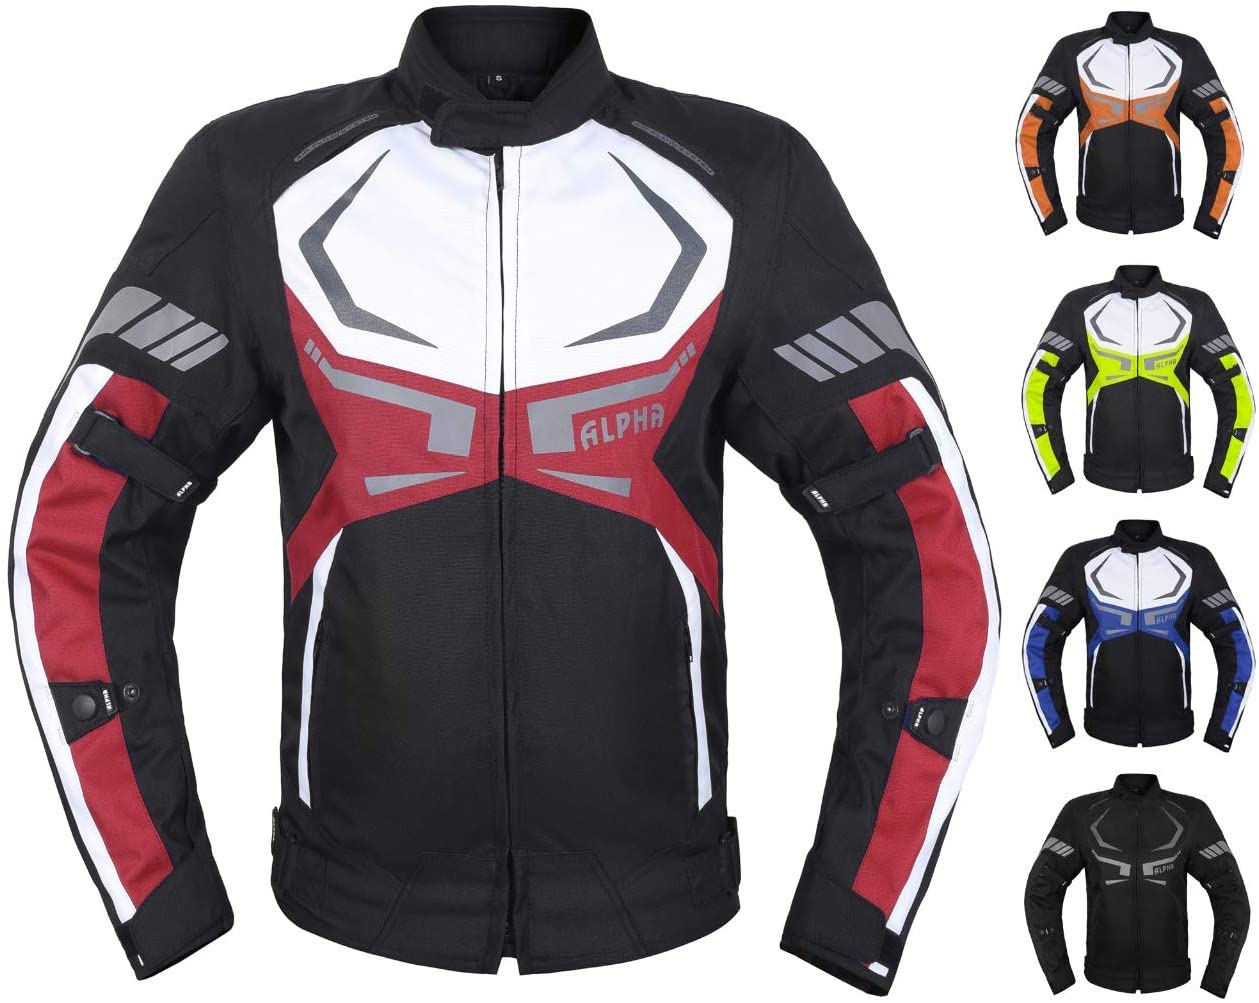 ACG ALL SEASON VIPER MOTORCYCLE JACKET TJ0027 (RED, 4X-LARGE)